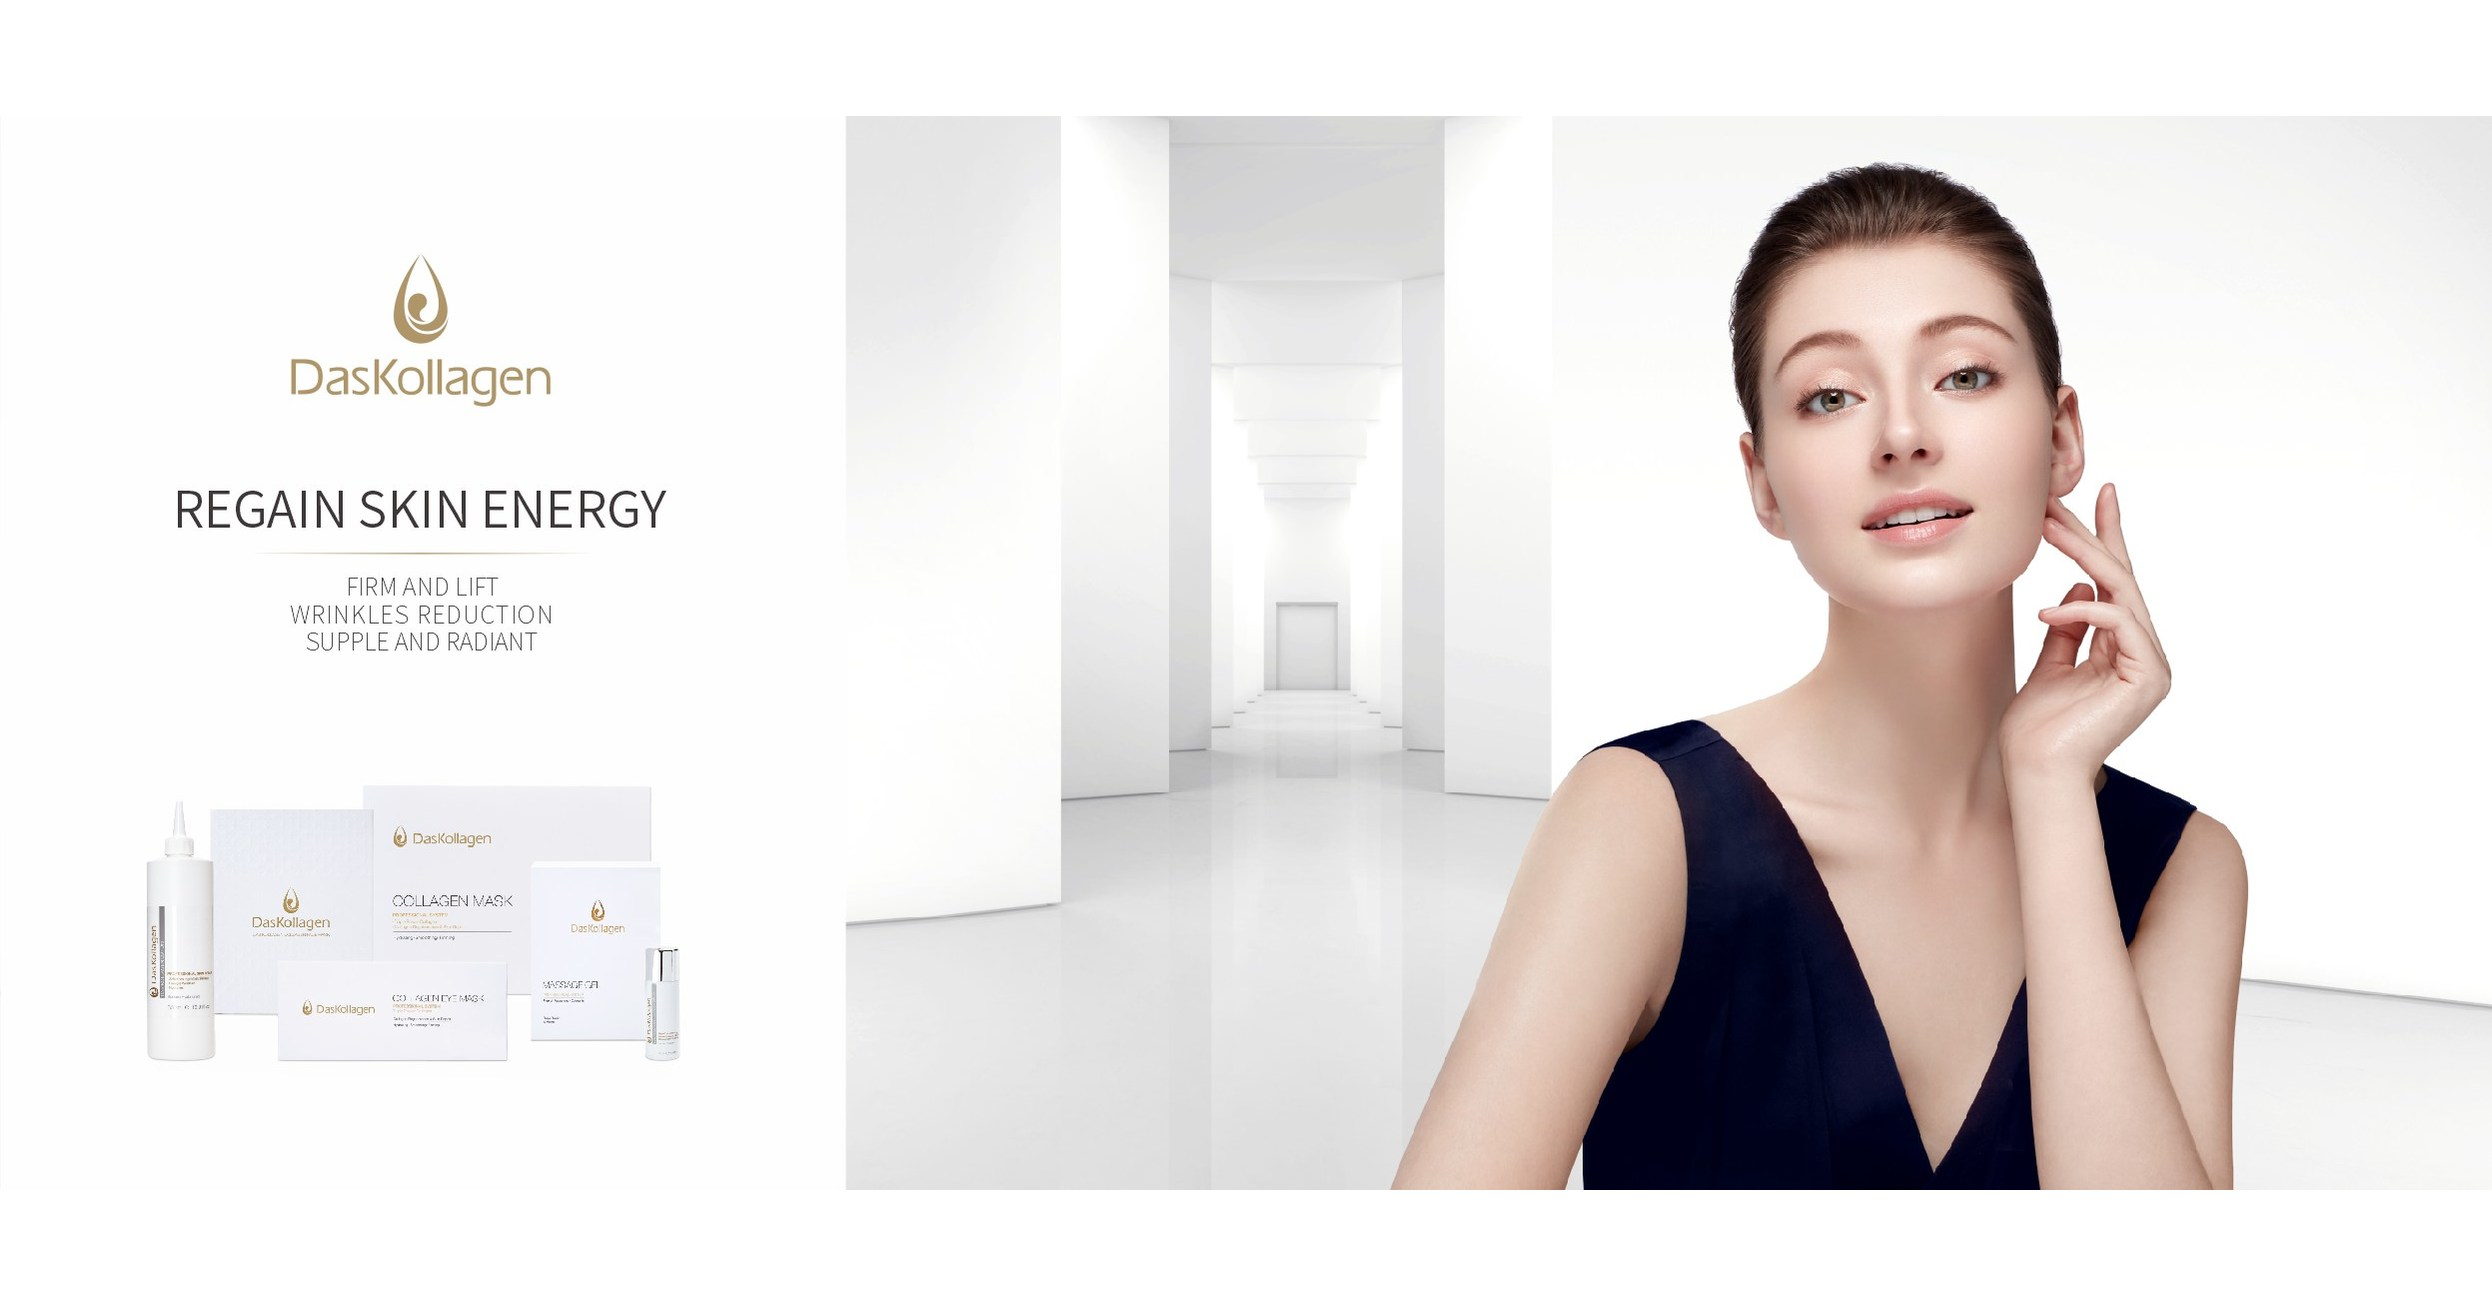 Das Kollagen -- Skin Regeneration & Repair, a Miracle for Anti-aging will Officially Enter Chinese Market in August